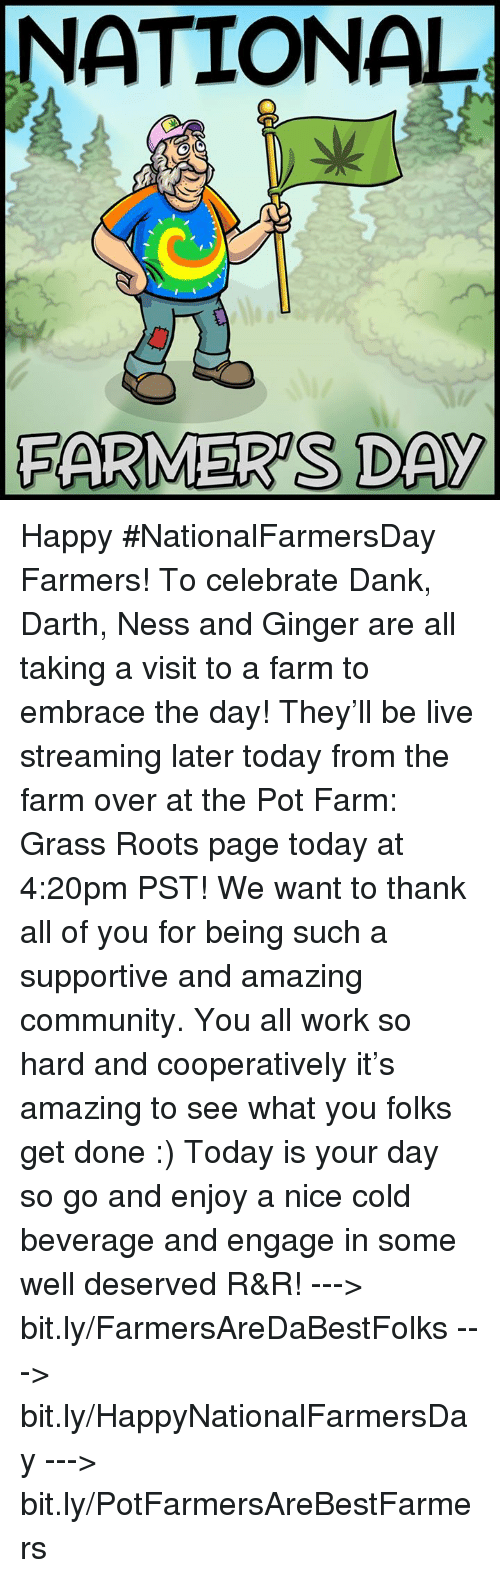 pot farm: NATIONAL  FARMERS DAY Happy #NationalFarmersDay Farmers! To celebrate Dank, Darth, Ness and Ginger are all taking a visit to a farm to embrace the day! They'll be live streaming later today from the farm over at the Pot Farm: Grass Roots page today at 4:20pm PST!   We want to thank all of you for being such a supportive and amazing community. You all work so hard and cooperatively it's amazing to see what you folks get done :) Today is your day so go and enjoy a nice cold beverage and engage in some well deserved R&R!   ---> bit.ly/FarmersAreDaBestFolks ---> bit.ly/HappyNationalFarmersDay ---> bit.ly/PotFarmersAreBestFarmers